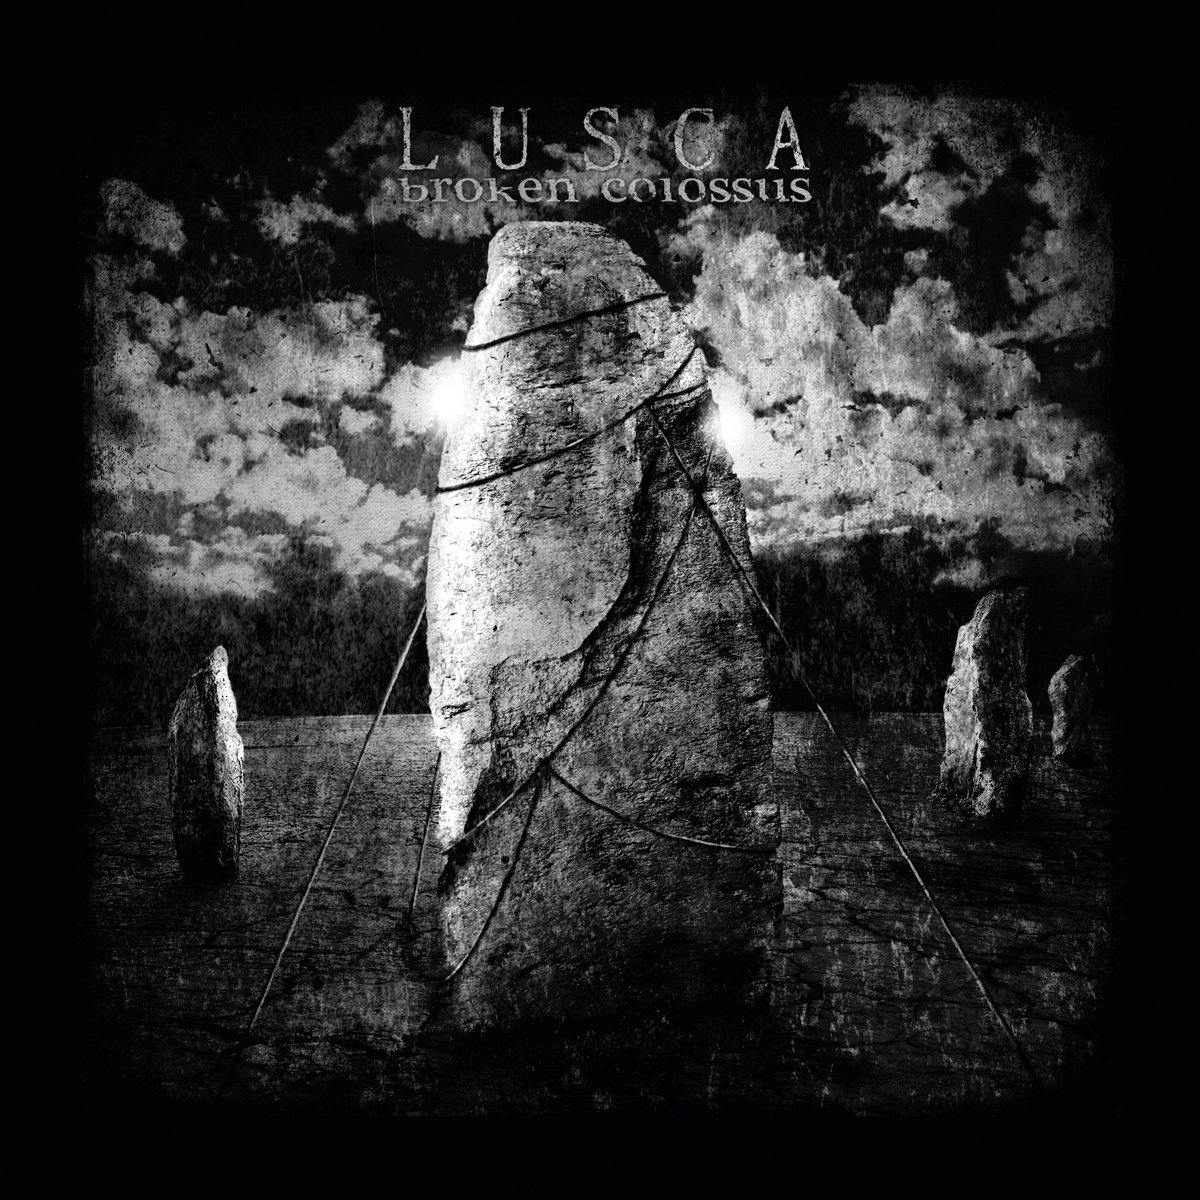 Lusca – Broken Colossus